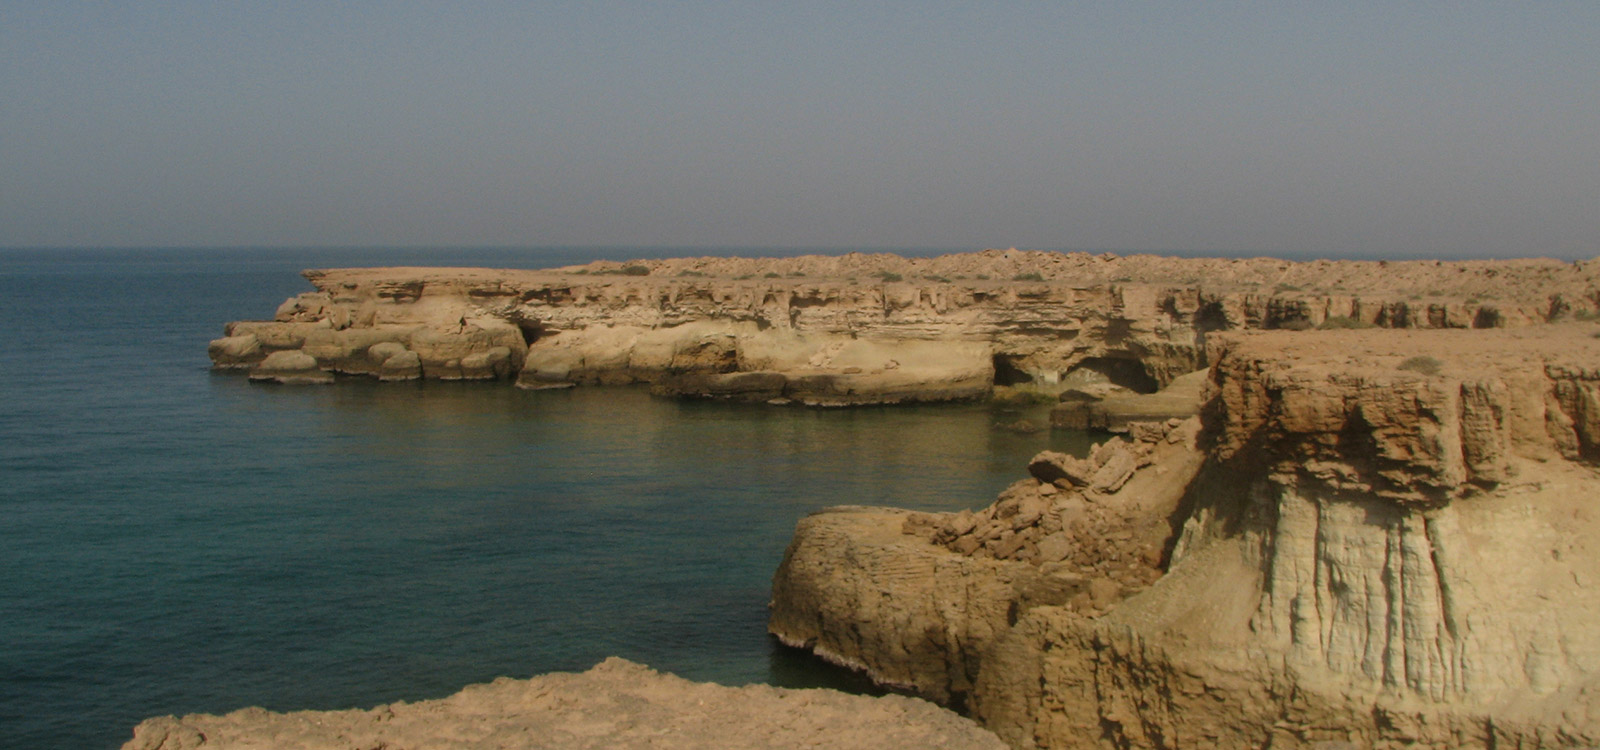 Integrated Coastal Zone Management (ICZM) in Hormozgan Province